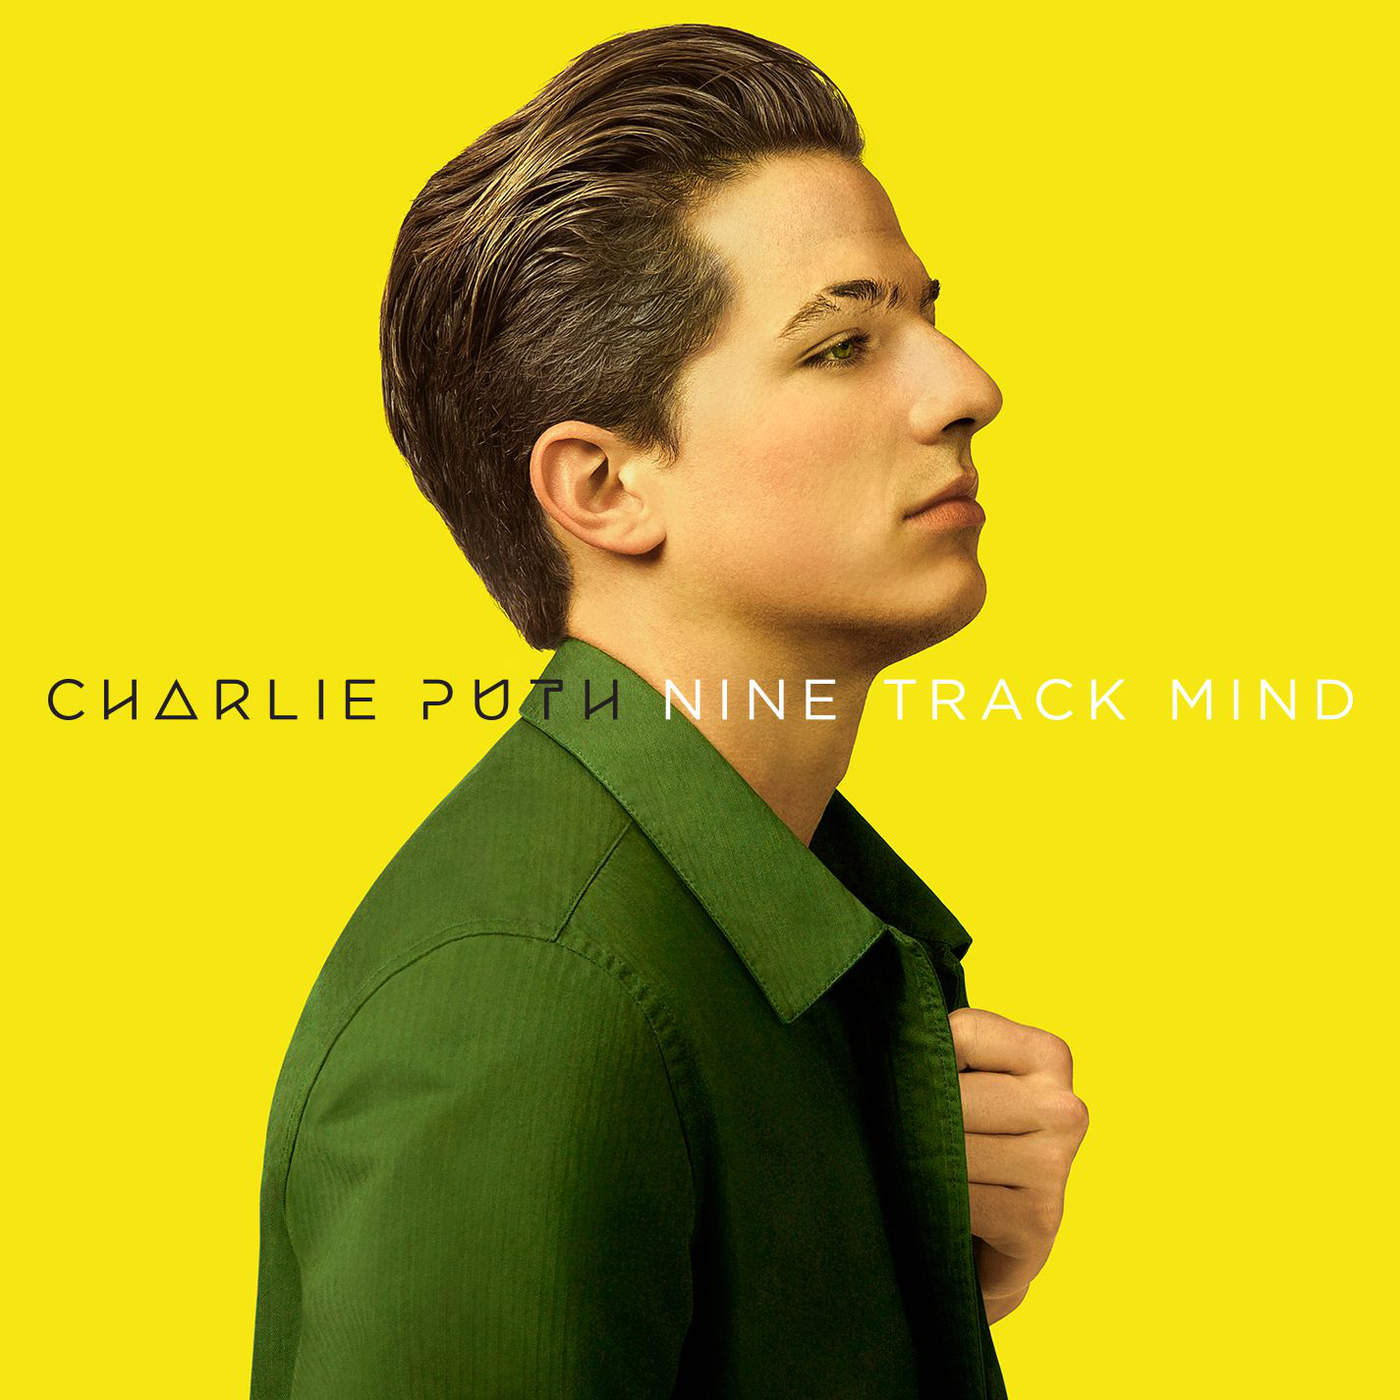 Charlie Puth - We Don't Talk Anymore (feat. Selena Gomez) - Single Cover